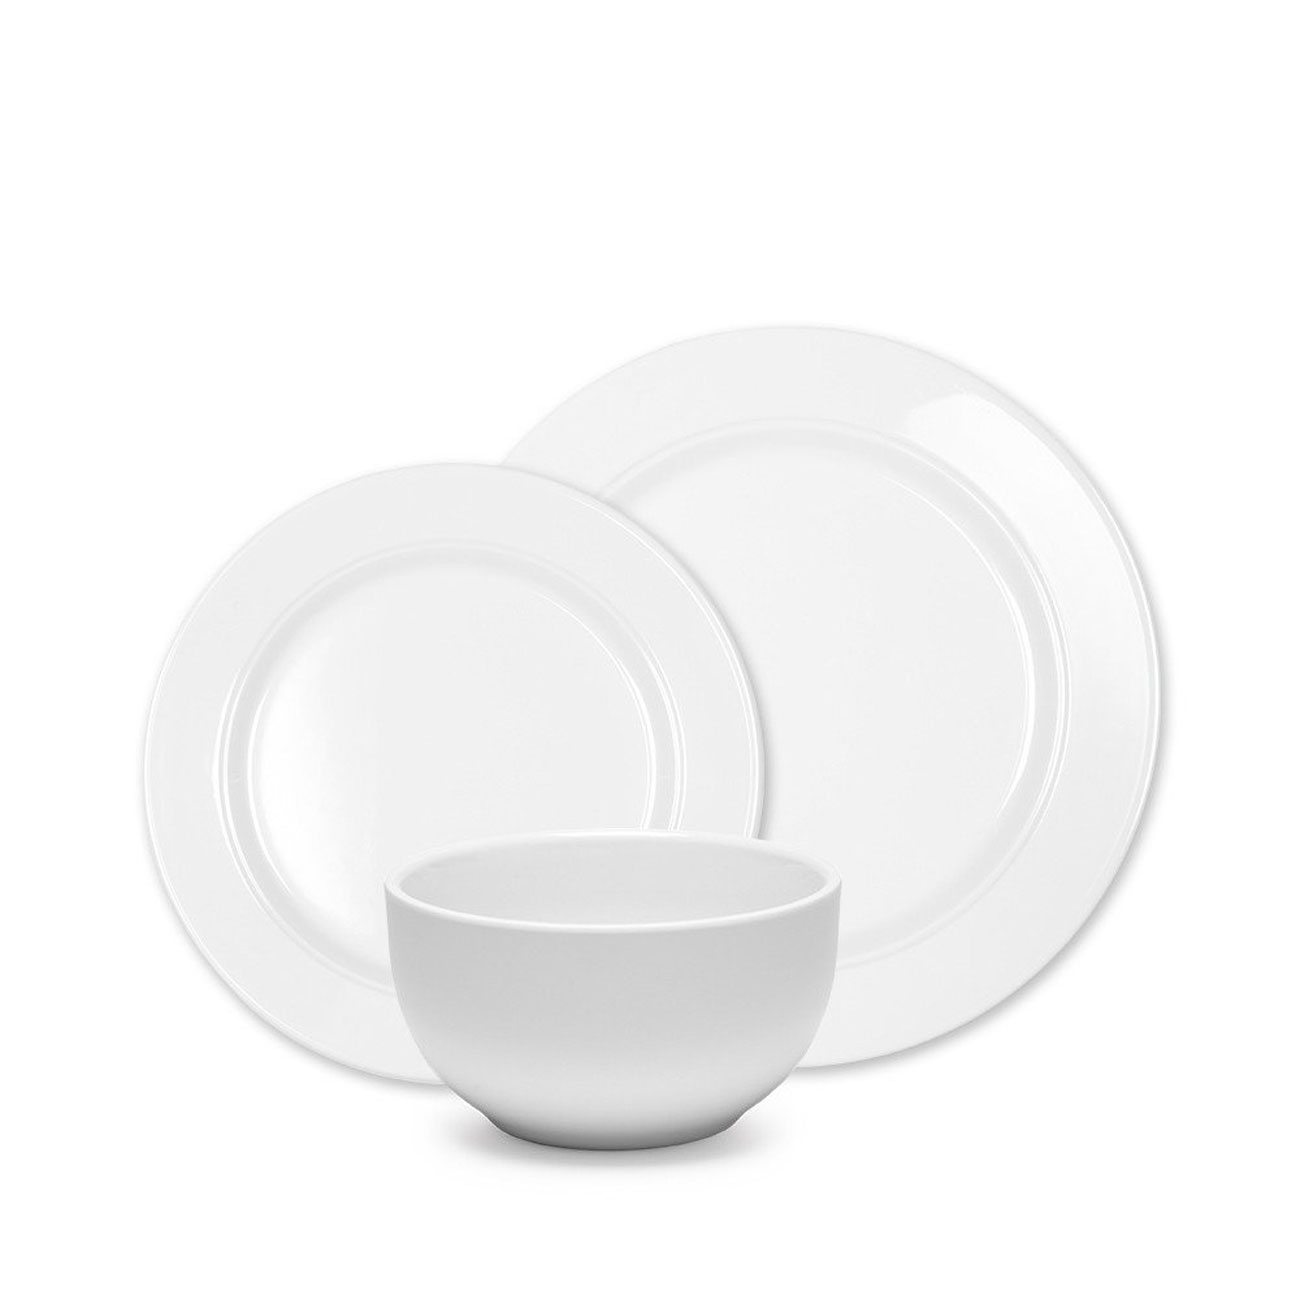 Supple Q Squared Diamond Round Melamine Dinnerware Set Q Squared Diamond Round Melamine Dinnerware Set Michael C Melamine Dinnerware Sets Sam S Club Melamine Dinnerware Sets Walmart houzz-03 Melamine Dinnerware Sets